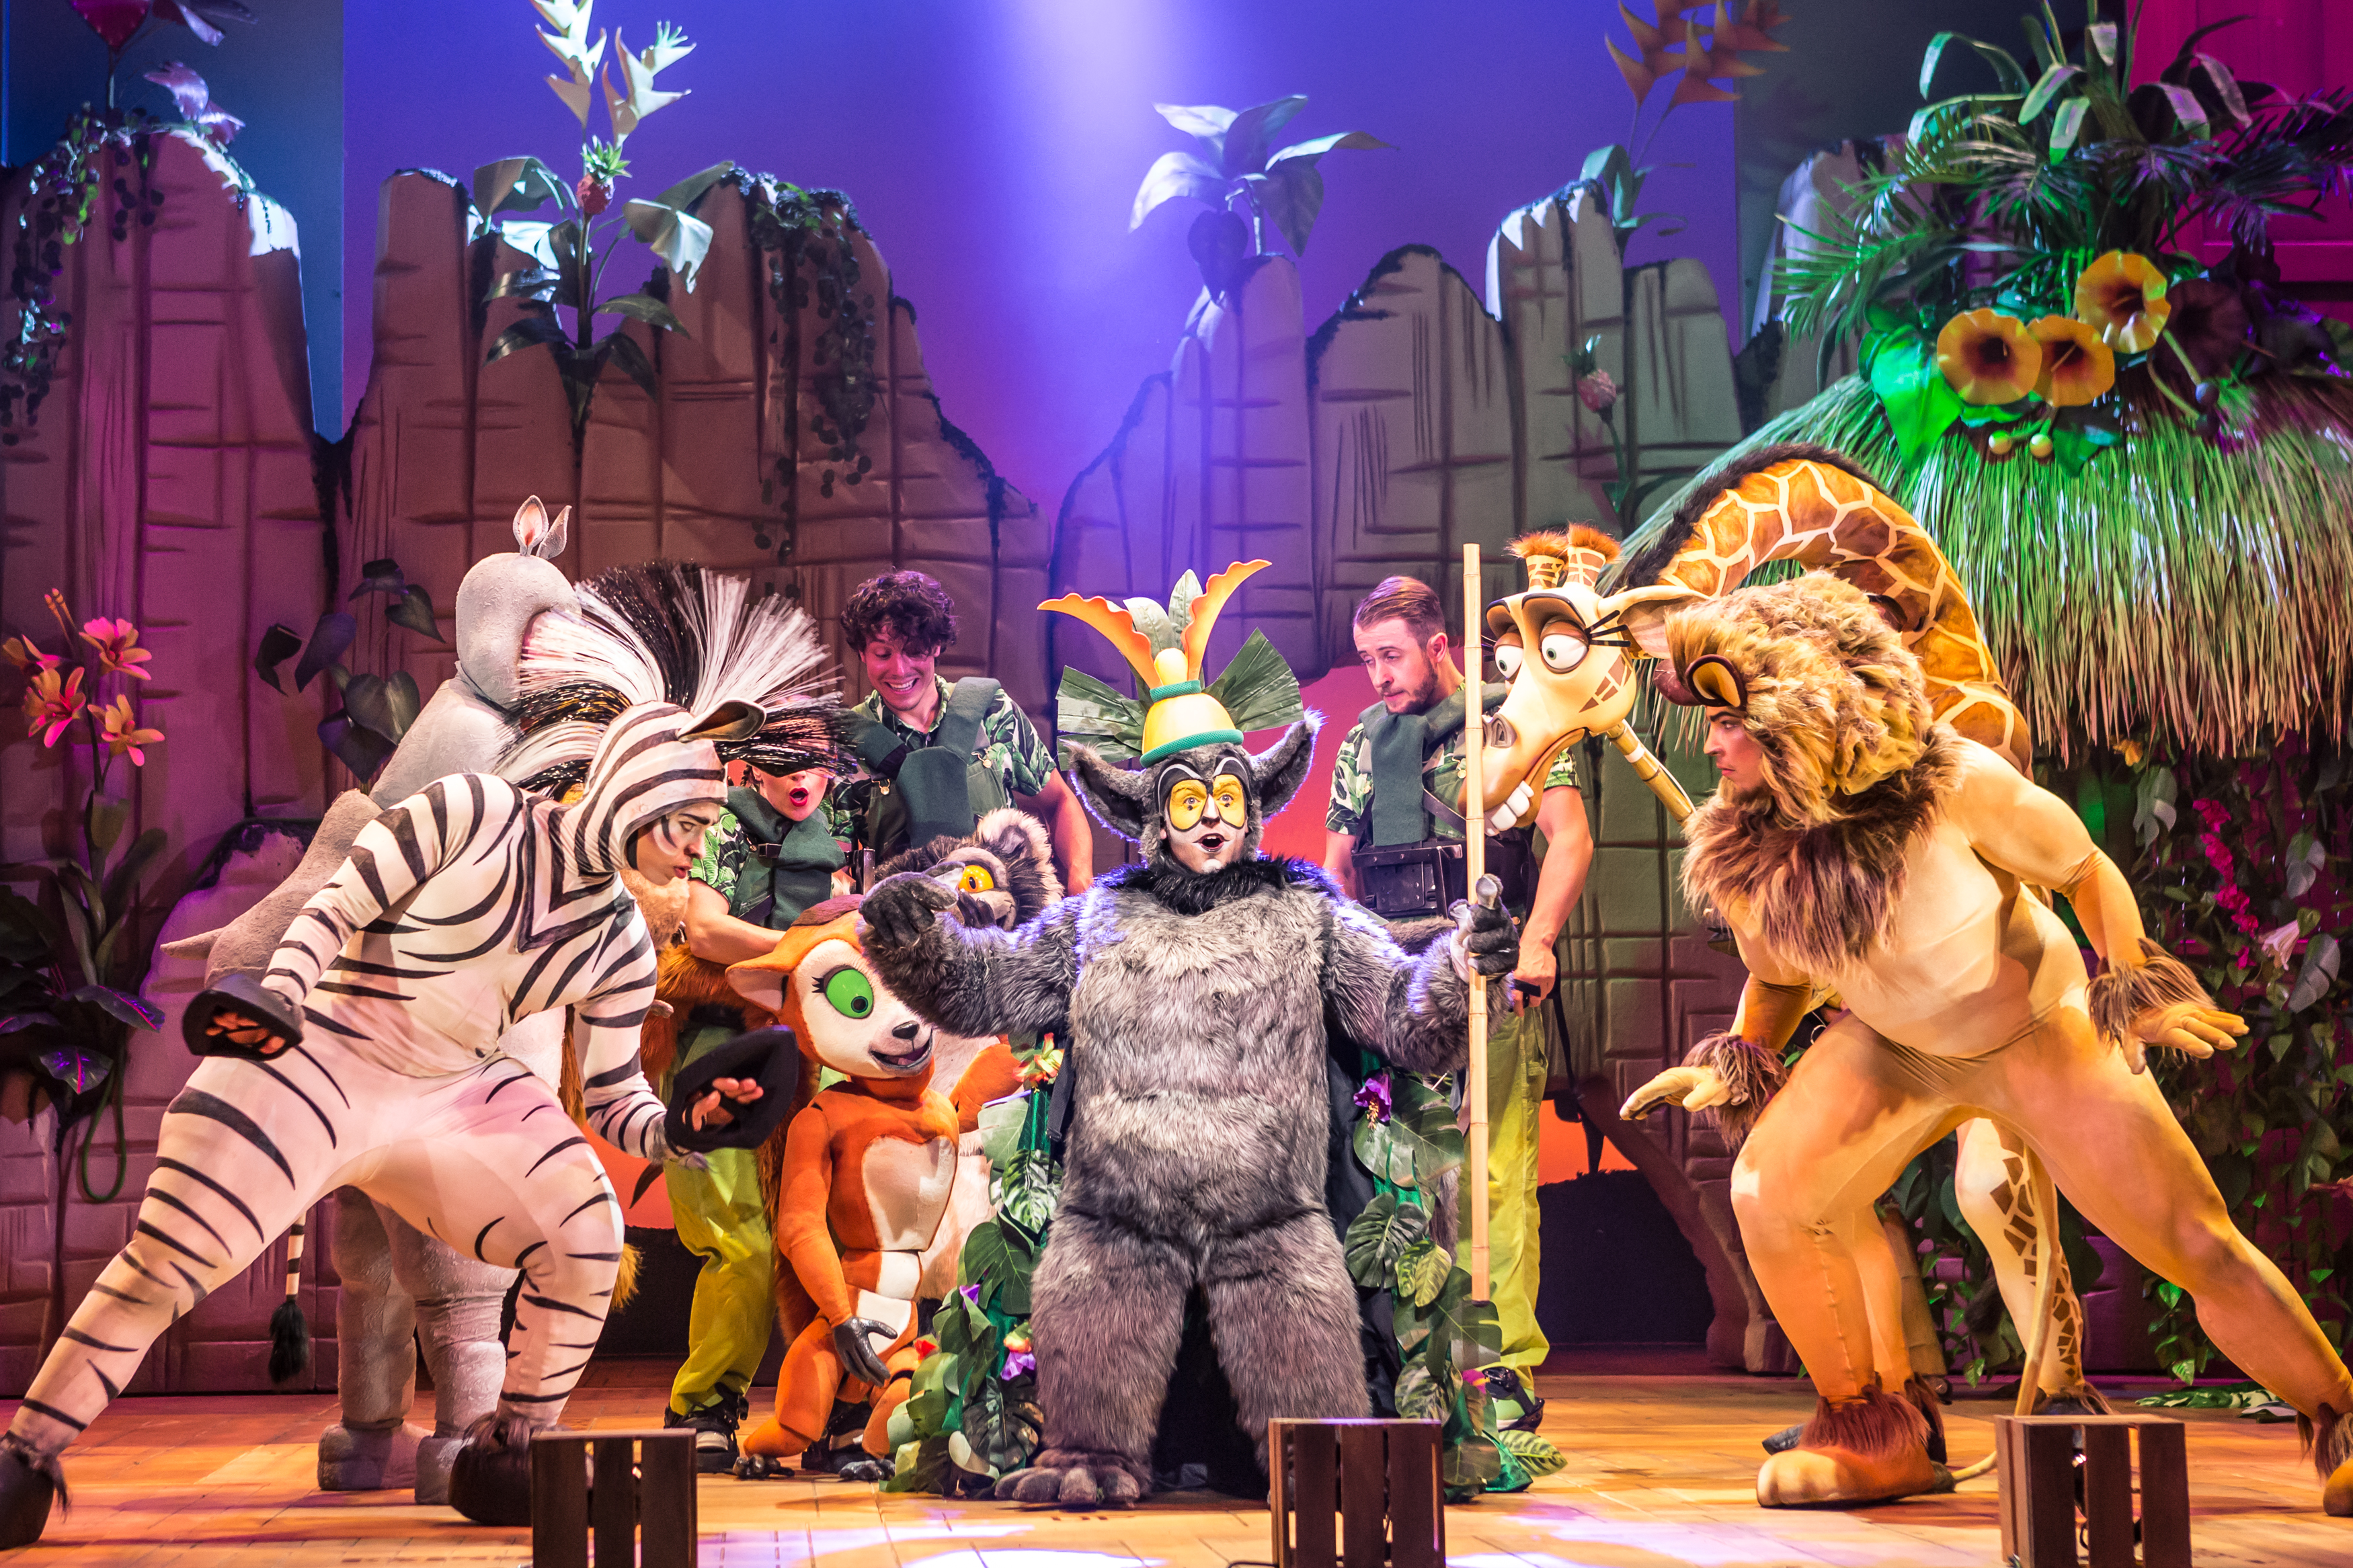 Theatre: Whatever you do, don't miss out on Madagascar - the musical at Exeter Northcott. Exploring Exeter